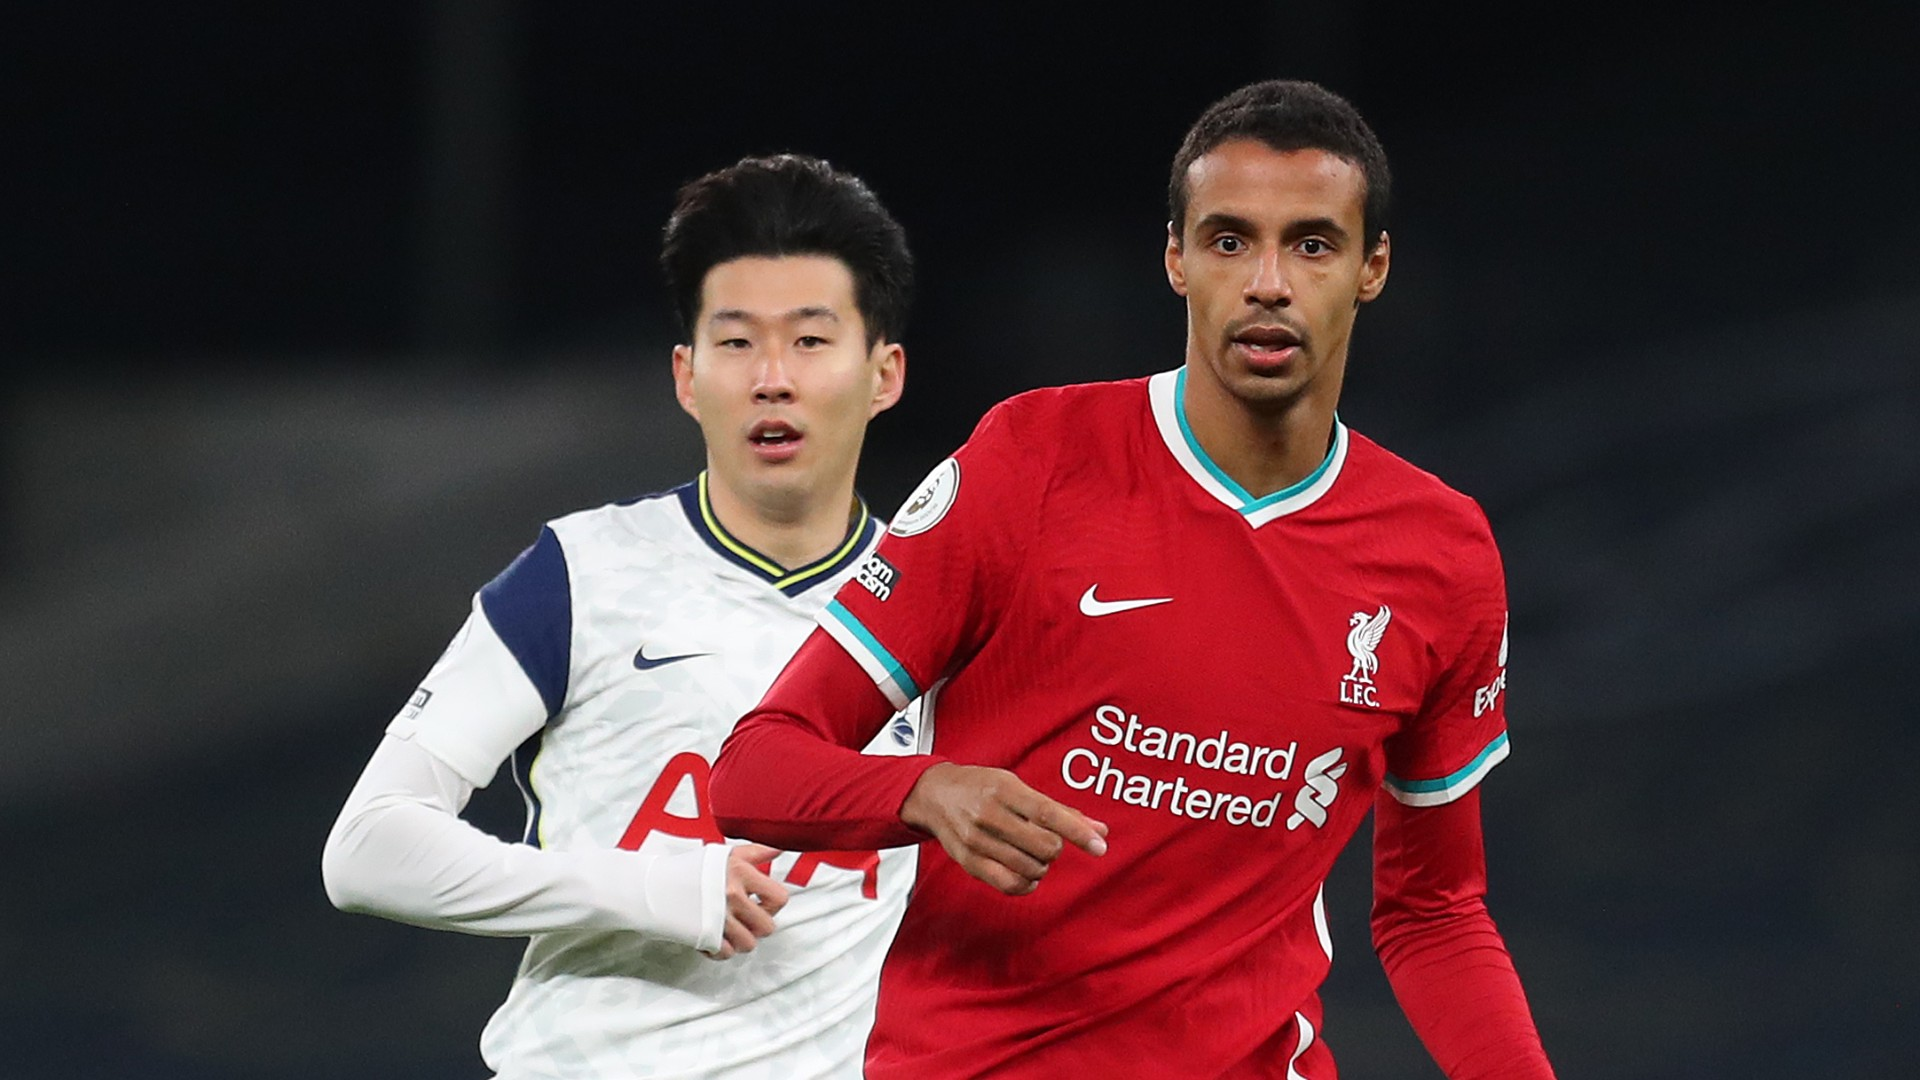 Liverpool's defensive injury crisis deepens with Matip subbed off at halftime against Spurs